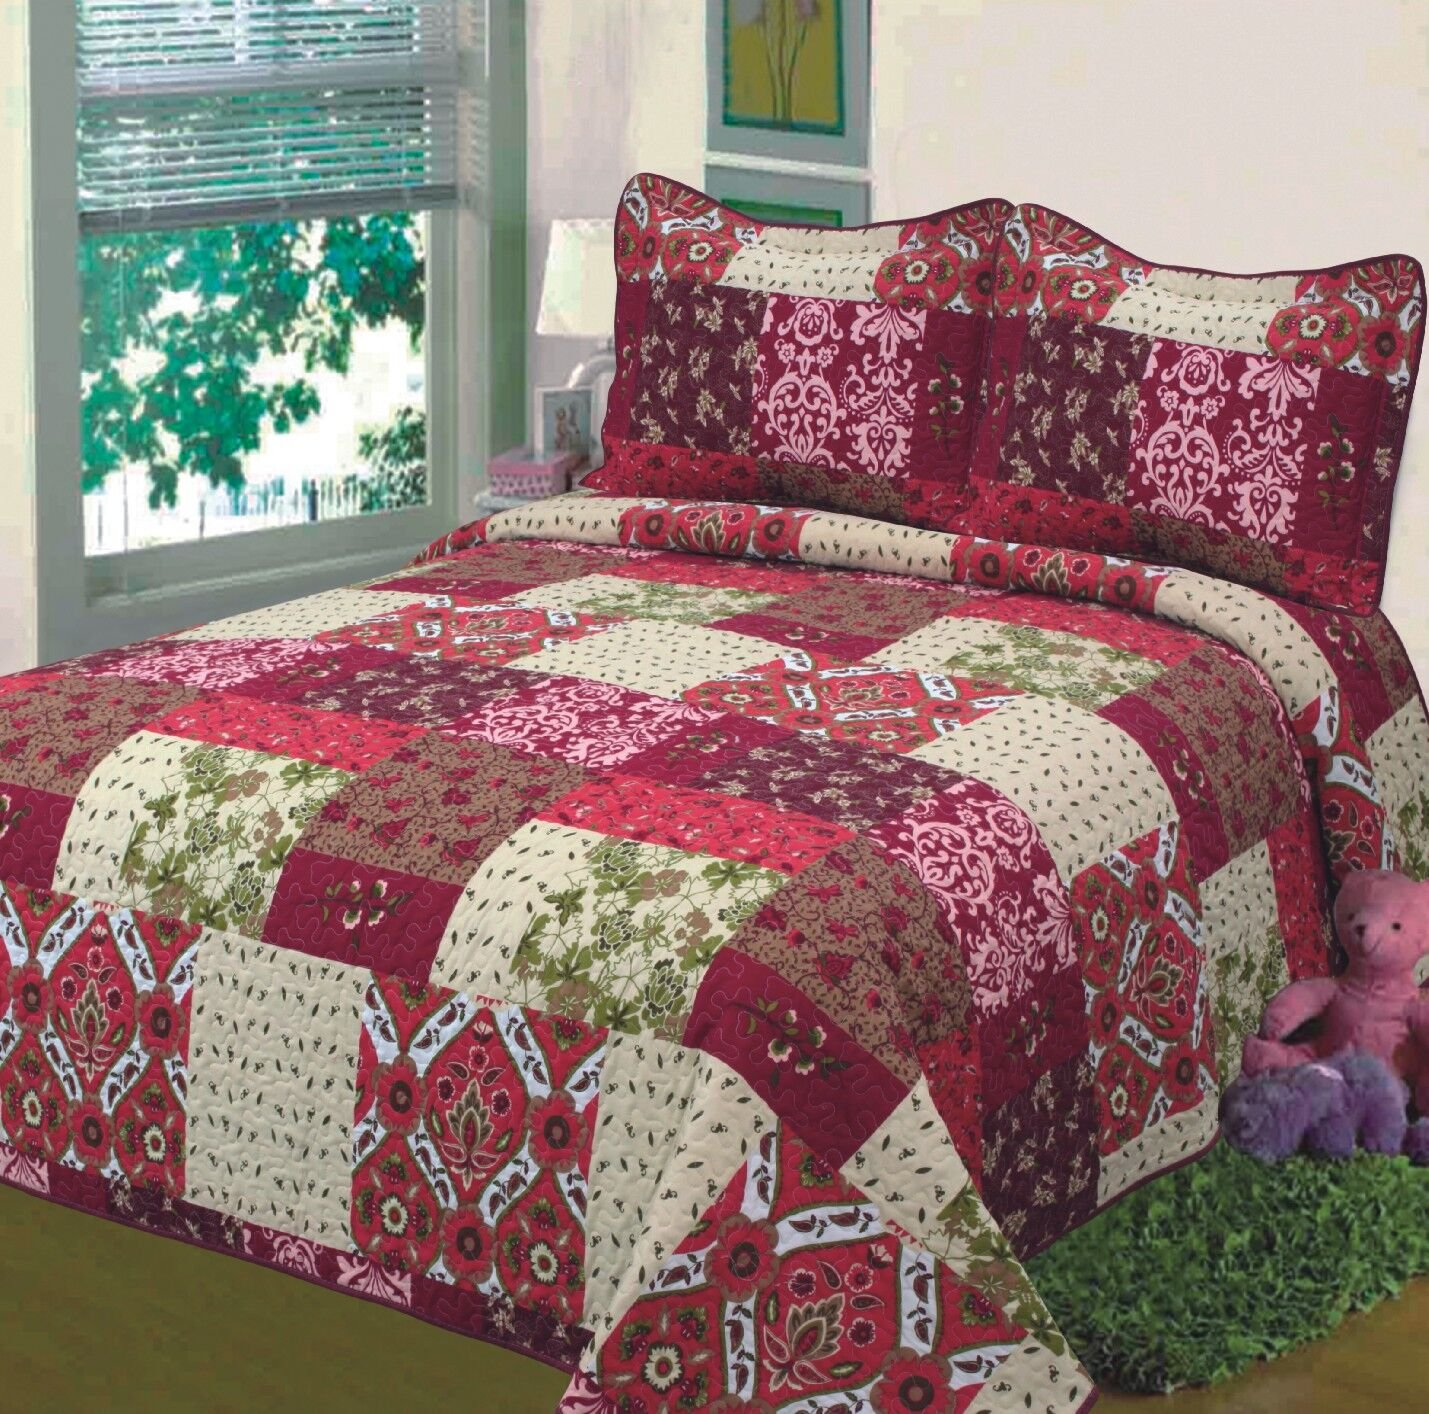 Fancy Collection 3pc Bedspread Bed Cover Floral Beige Red Green Brown Burgundy